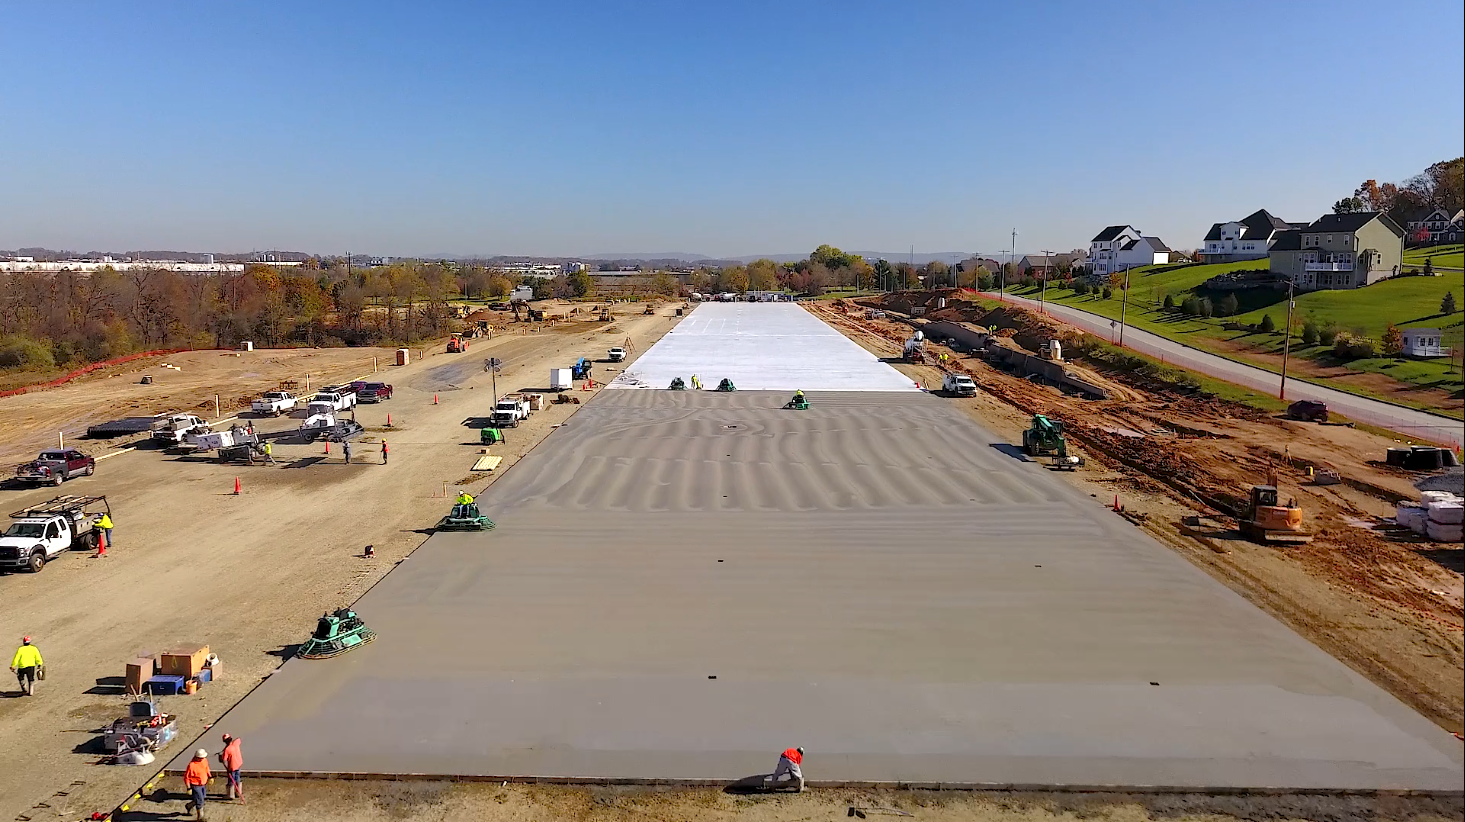 Aerial of construction site for NFI warehouse in Lehigh Valley, PA